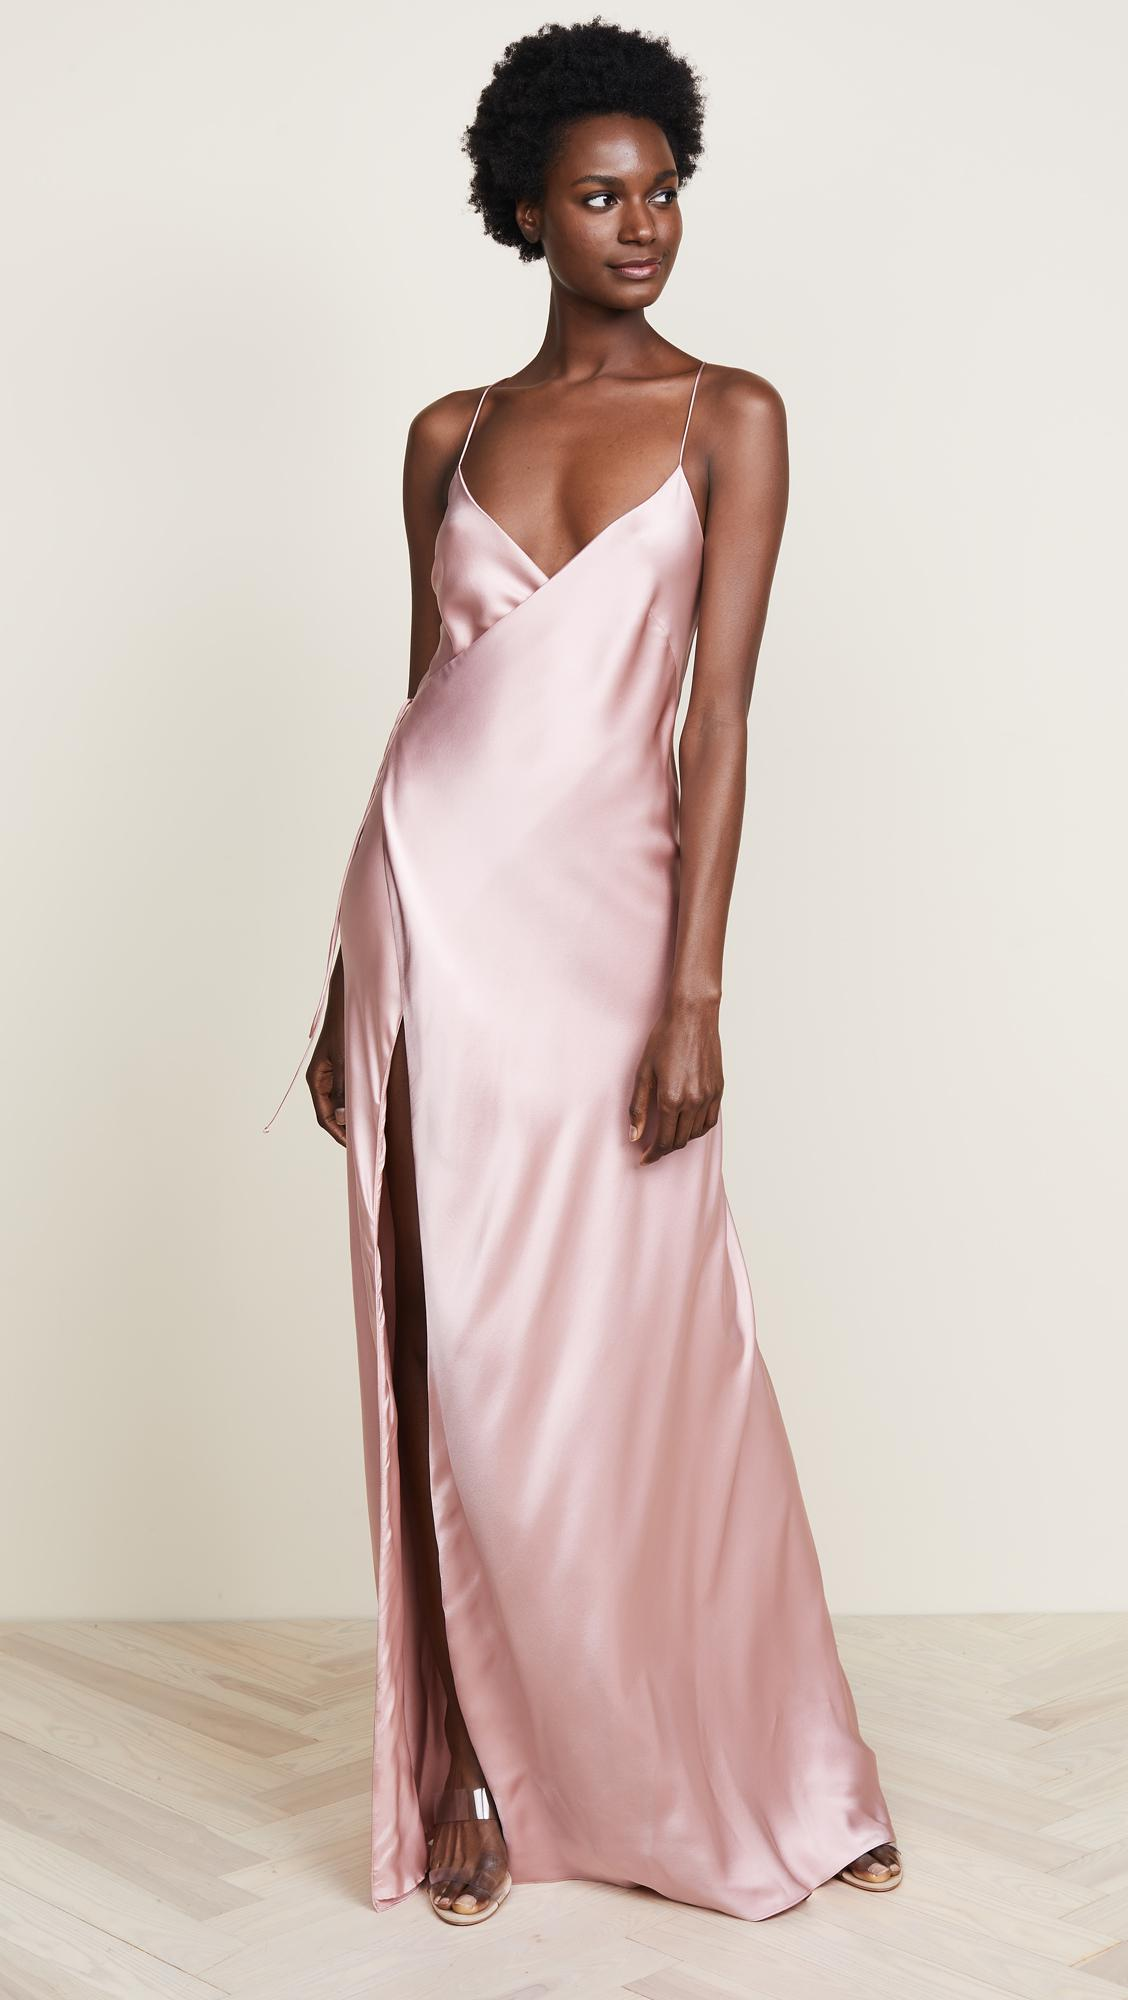 fe1fe559c86c05 Lyst - Michelle Mason Strappy Wrap Gown in Pink